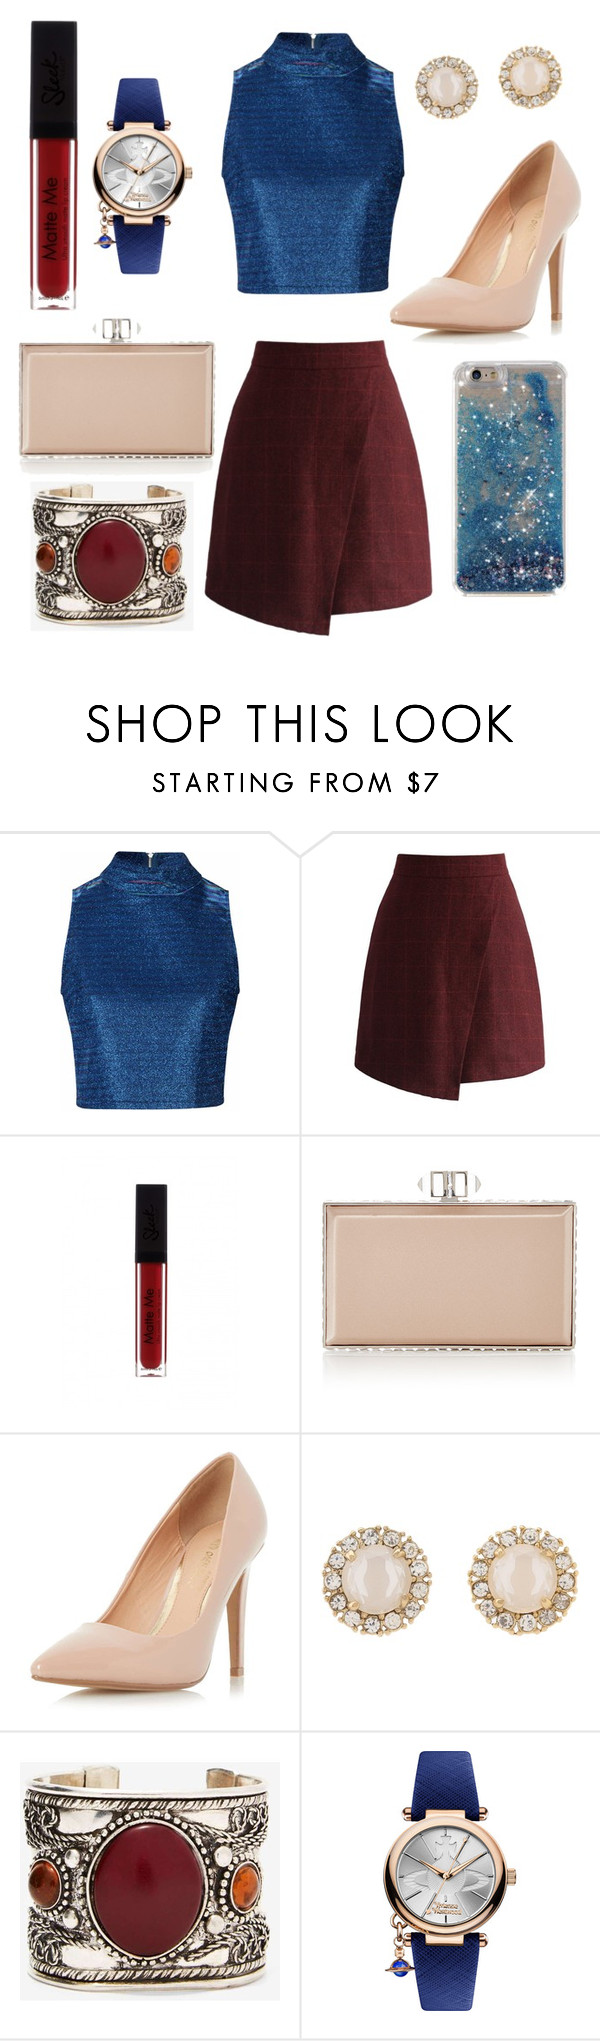 """Taylor-Swift-Inspired-Outfits 59/?"" by ashleymmck ❤ liked on Polyvore featuring Glamorous, Chicwish, Judith Leiber, Dorothy Perkins, Kate Spade and Vivienne Westwood"